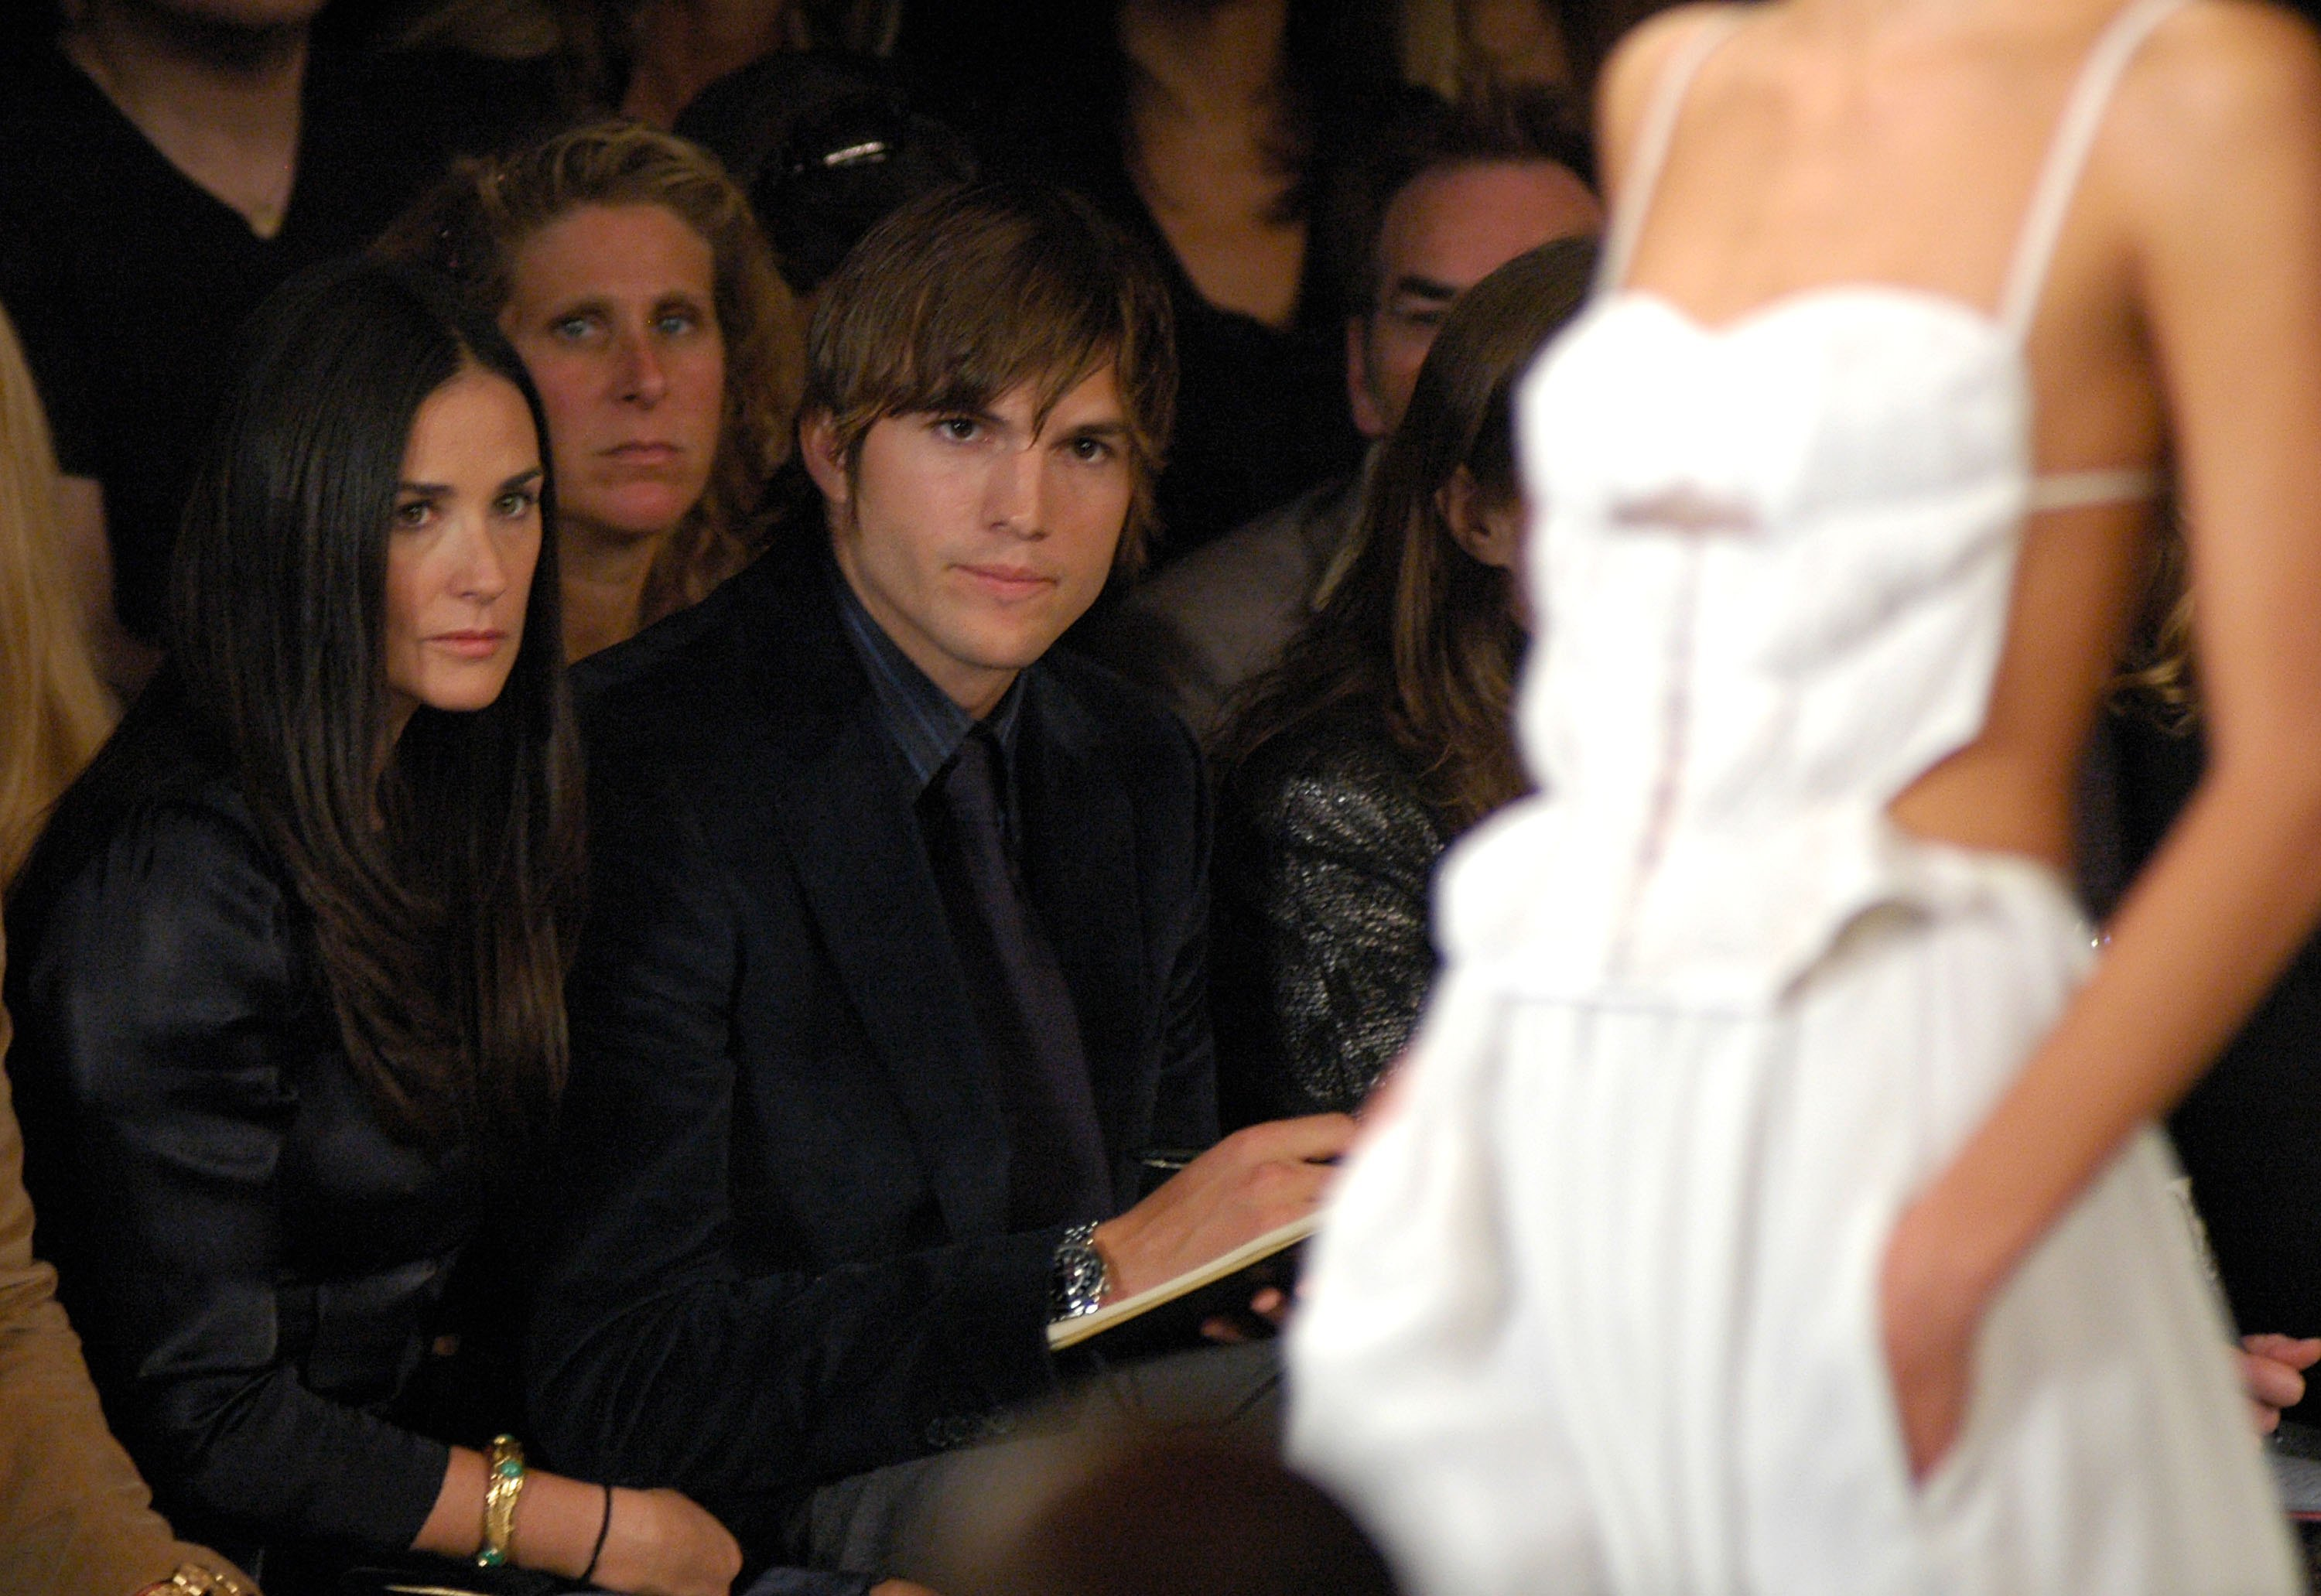 Demi Moore and Ashton Kutcher attend the Narciso Rodriguez Spring 2007 fashion show during Olympus Fashion Week in New York City on Sept. 12, 2006.